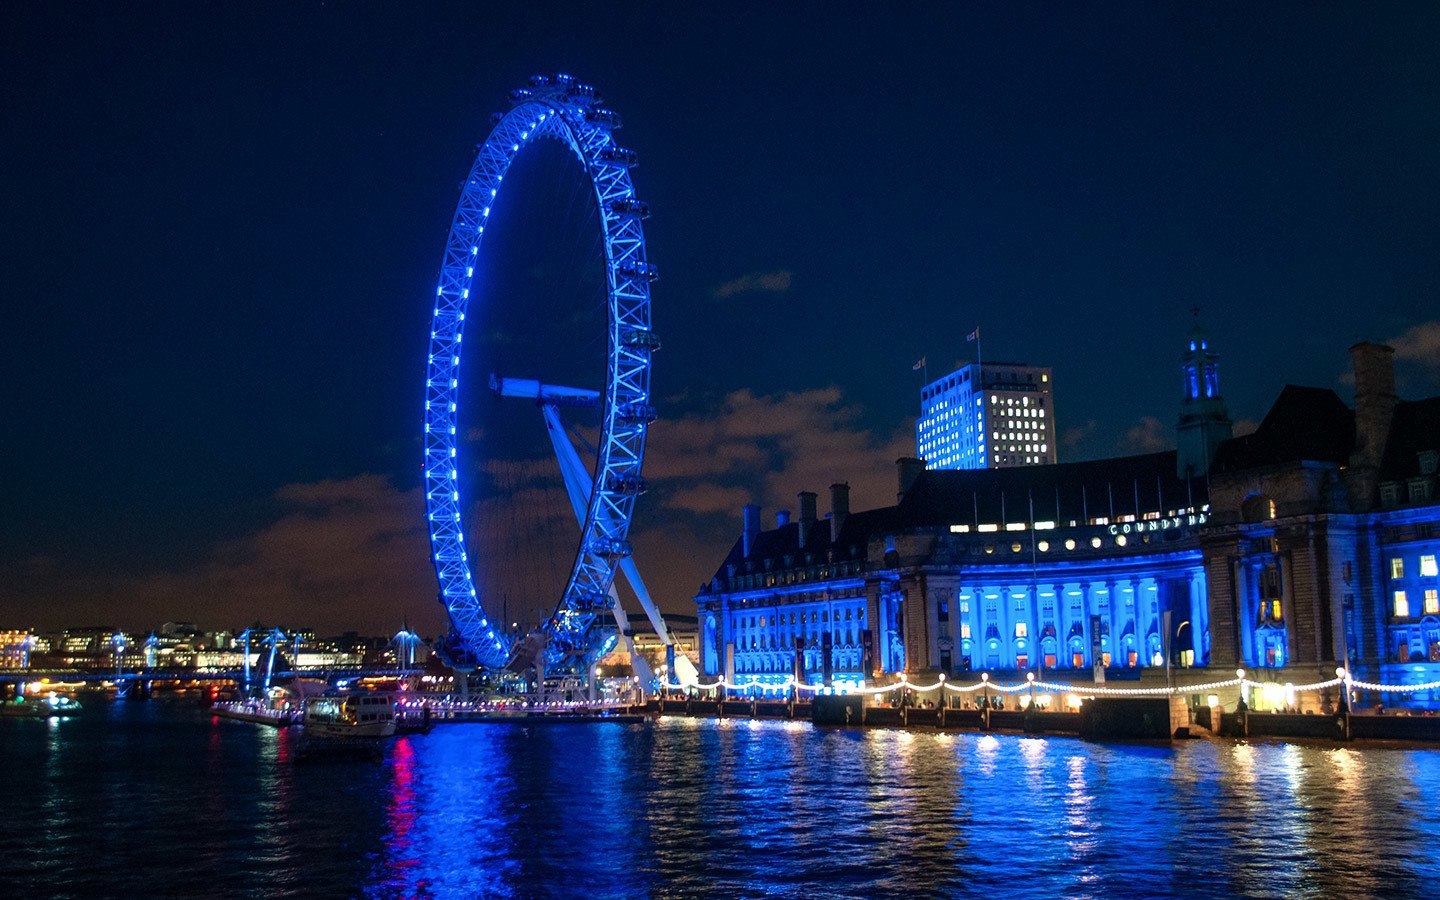 London film locations: A self-guided walking tour